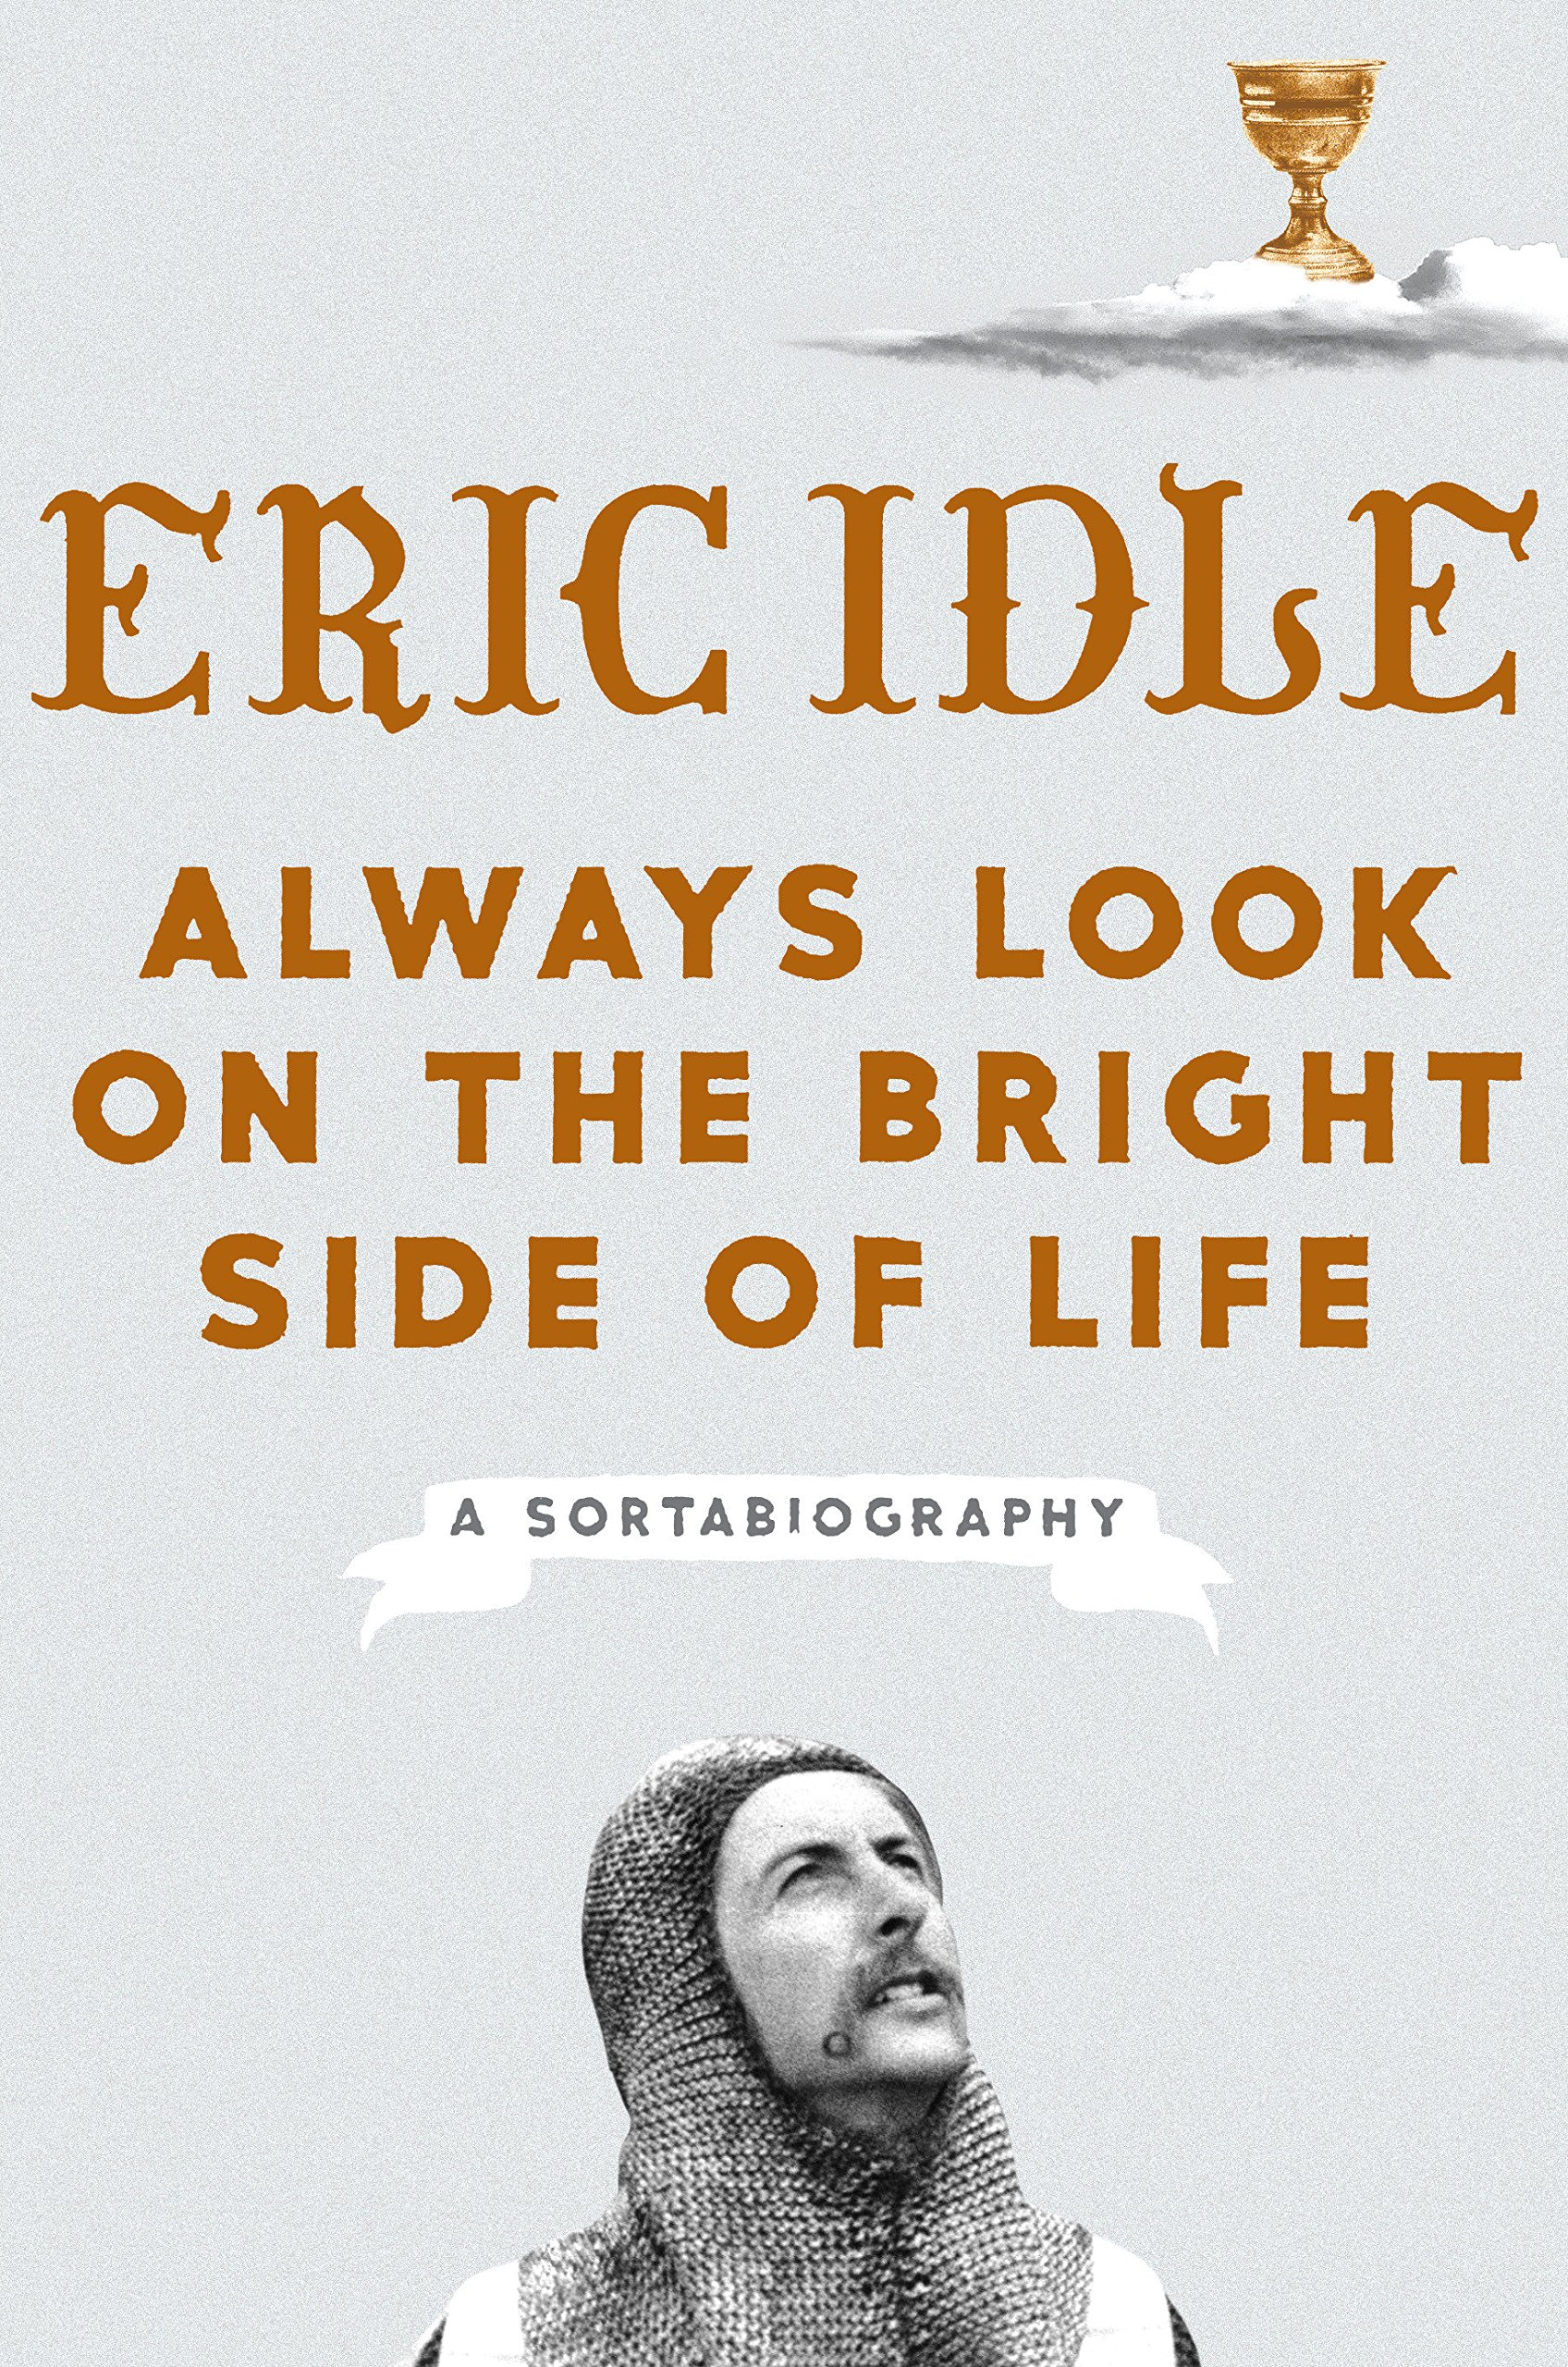 always look on the bright side of life a sortabiography eric idle